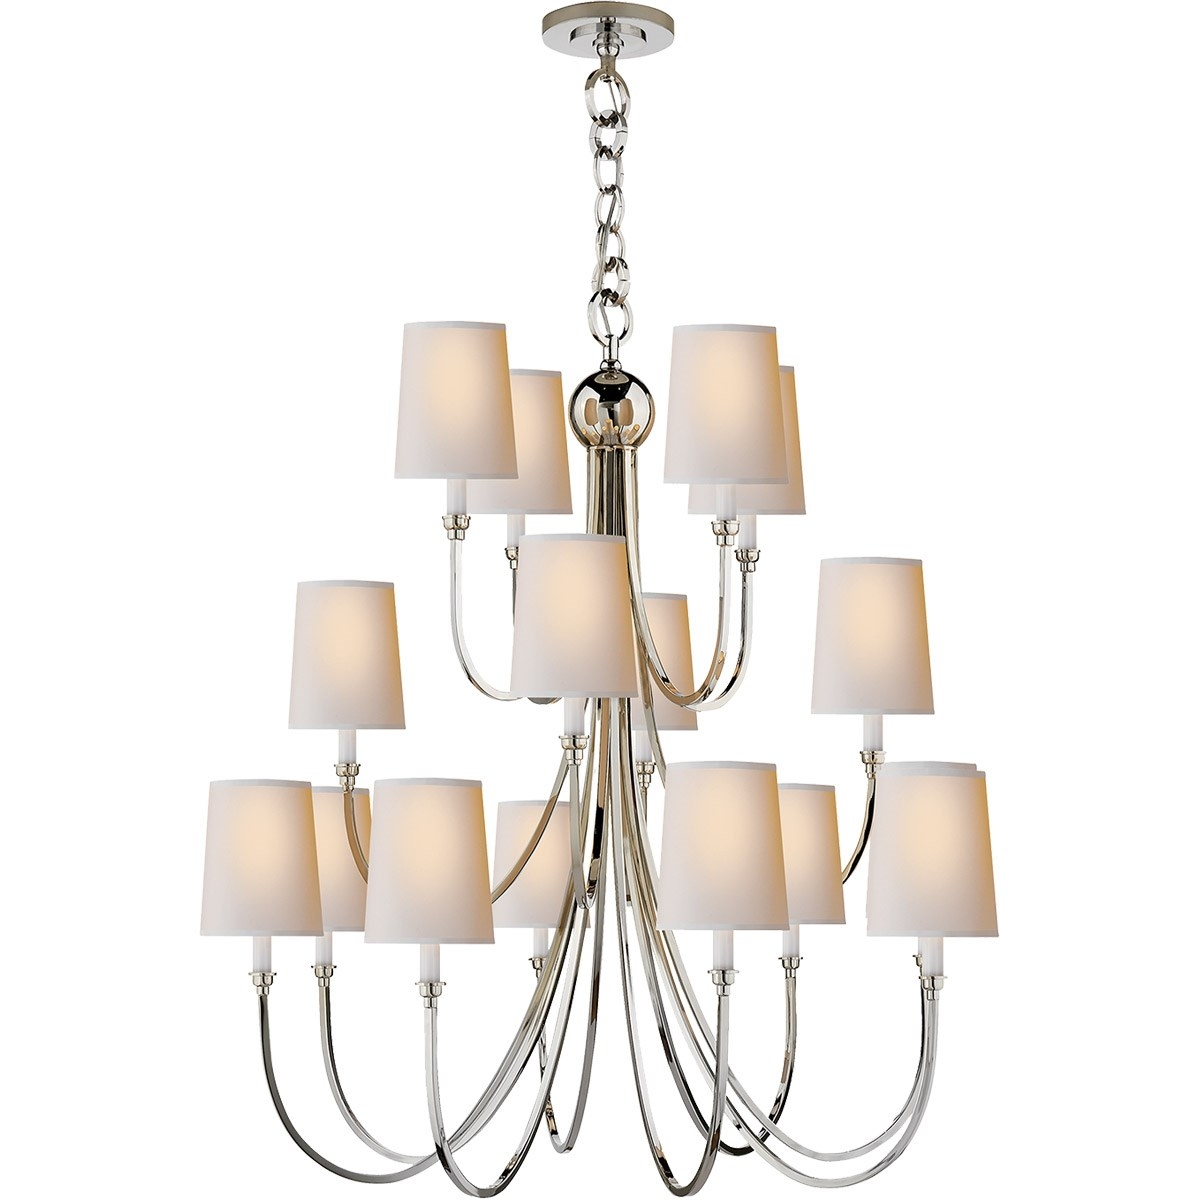 Visual Comfort Tob5019pn Np Reed 16 Light Extra Large Chandelier Intended For Extra Large Chandelier Lighting (#10 of 12)